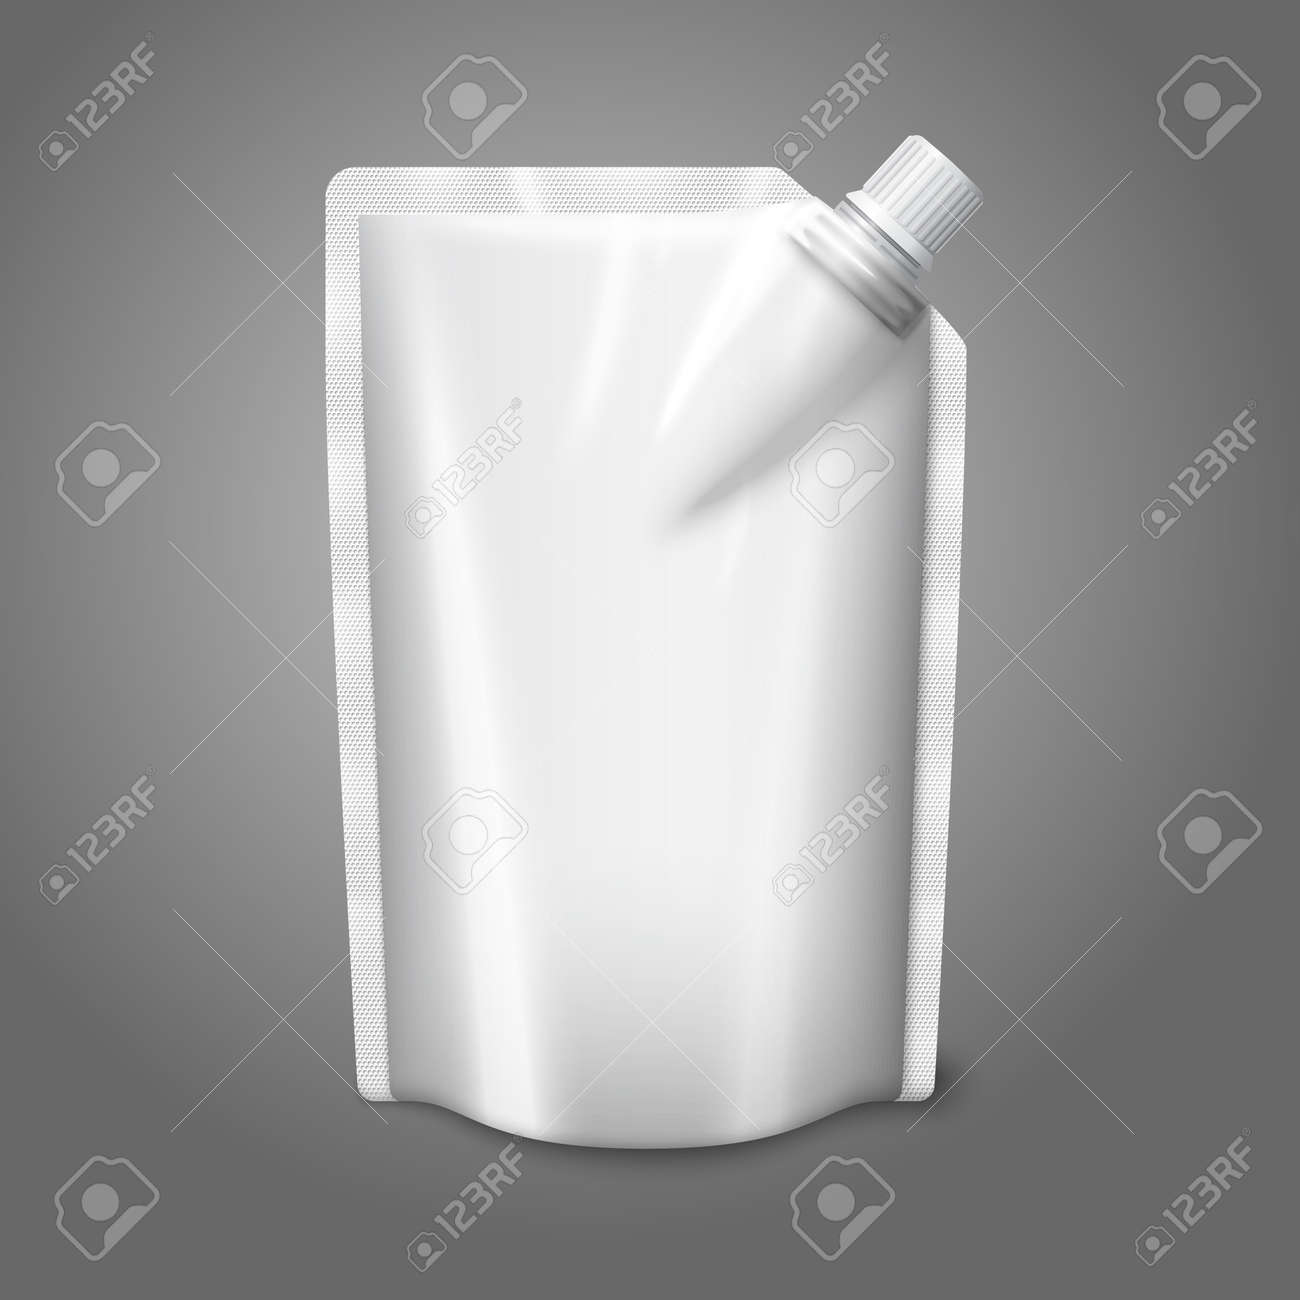 Blank white realistic plastic pouch with cap, isolated on grey background with place for your design and branding. Vector illustration - 153761126